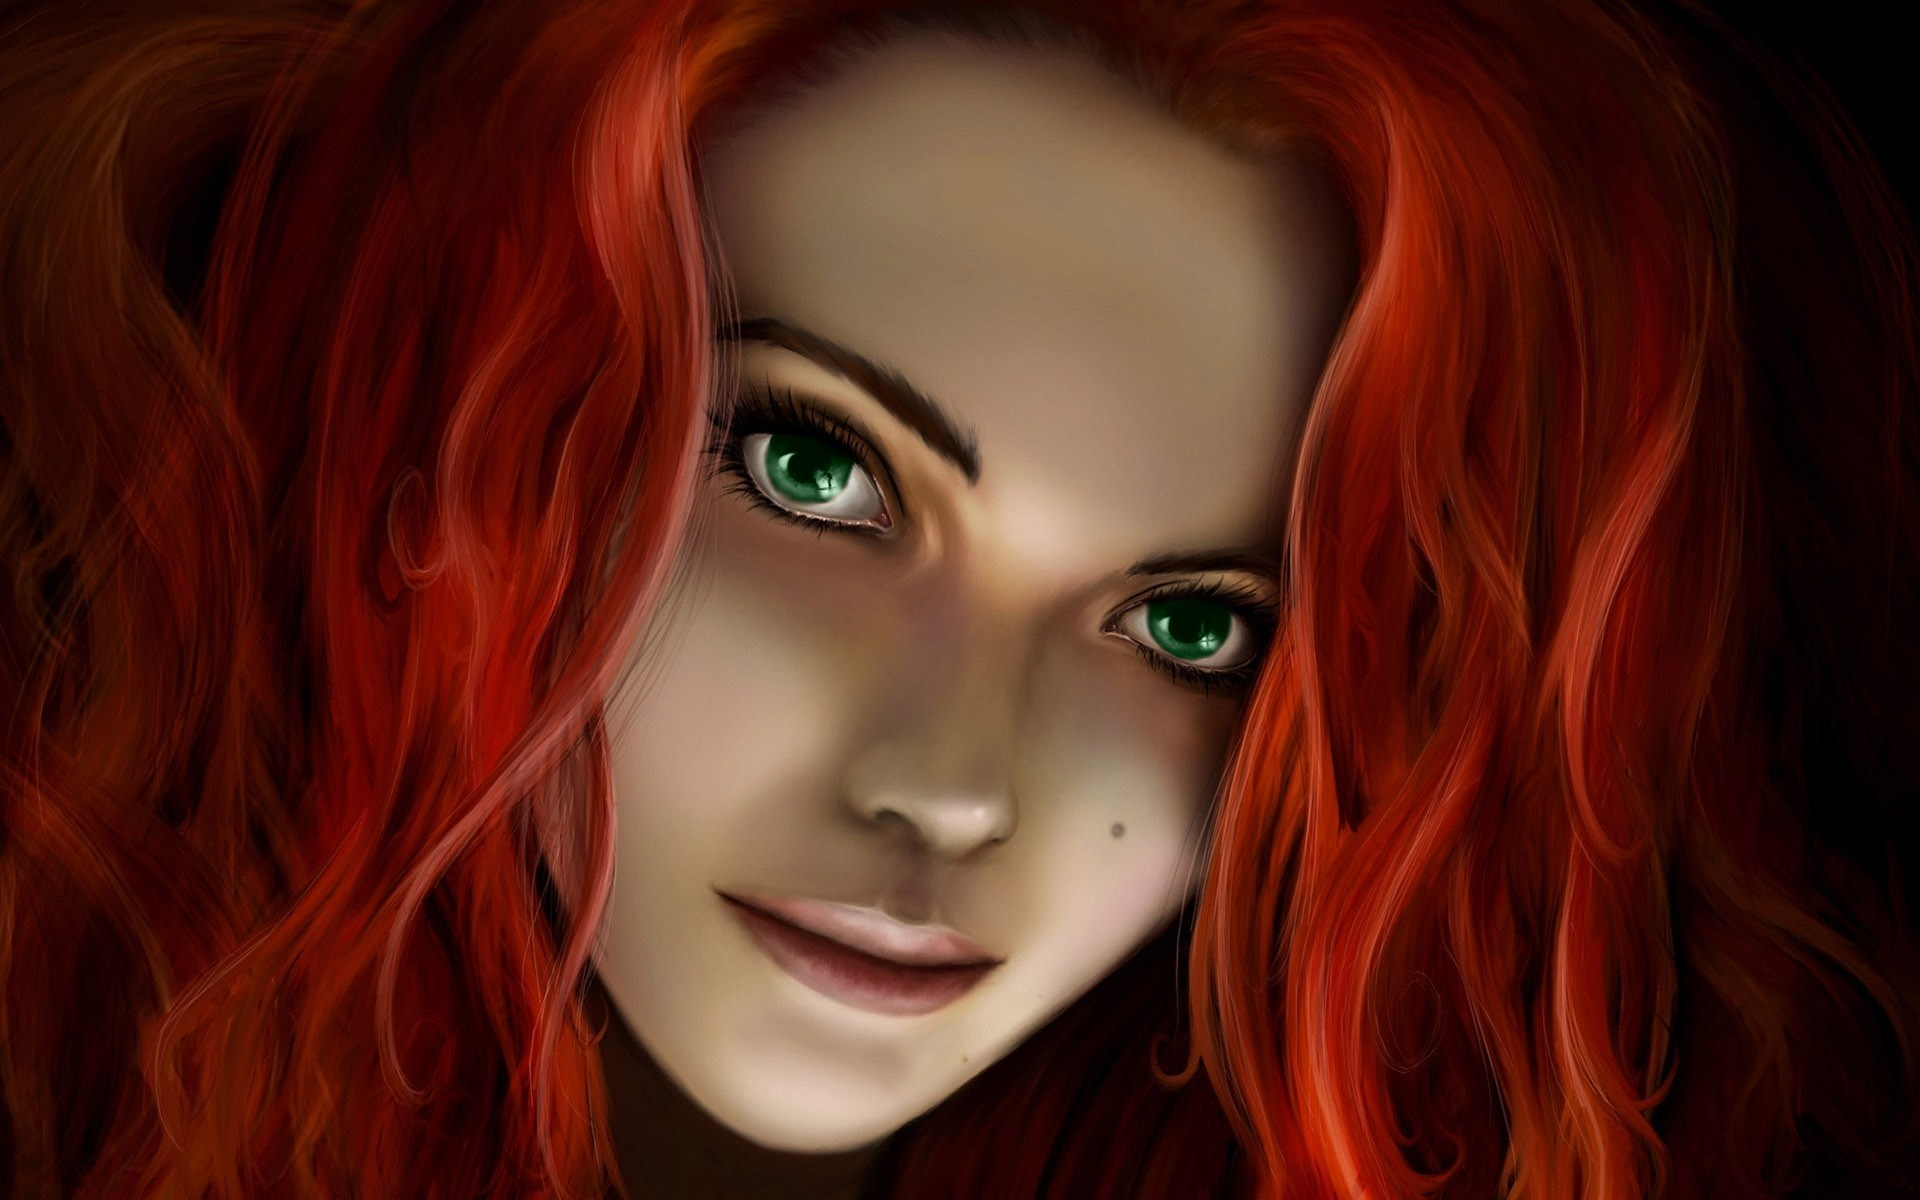 Redhead Girl Fantasy Artwork HD Wallpaper